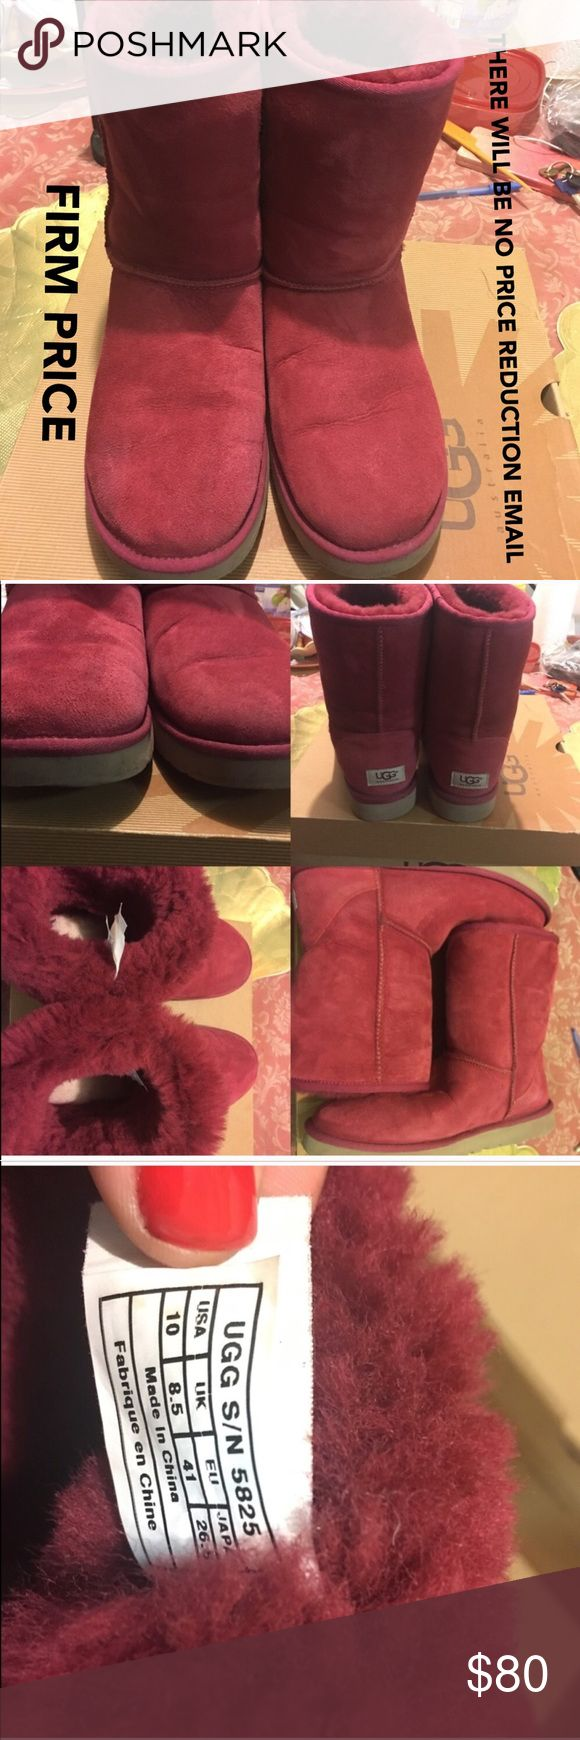 Authentic UGG Classic Short II ✅ITEM WILL BE VIDEOTAPED WHILE BEING PACKED AT THE POST OFFICE✅ 🚫THERE WILL BE NO PRICE REDUCTION EMAIL COMING YOUR WAY🚫 PAID $160 & COLOR IS RED. CONDITION: pristine, no stains, dirt (inside or out), smells or matted fur.  Worn a 5 times, heel in back or front not ran down. Runs true to size.  Feet slides right in, WIDE WIDTH FRIENDLY (me). Questions welcomed. UGG Shoes Winter & Rain Boots